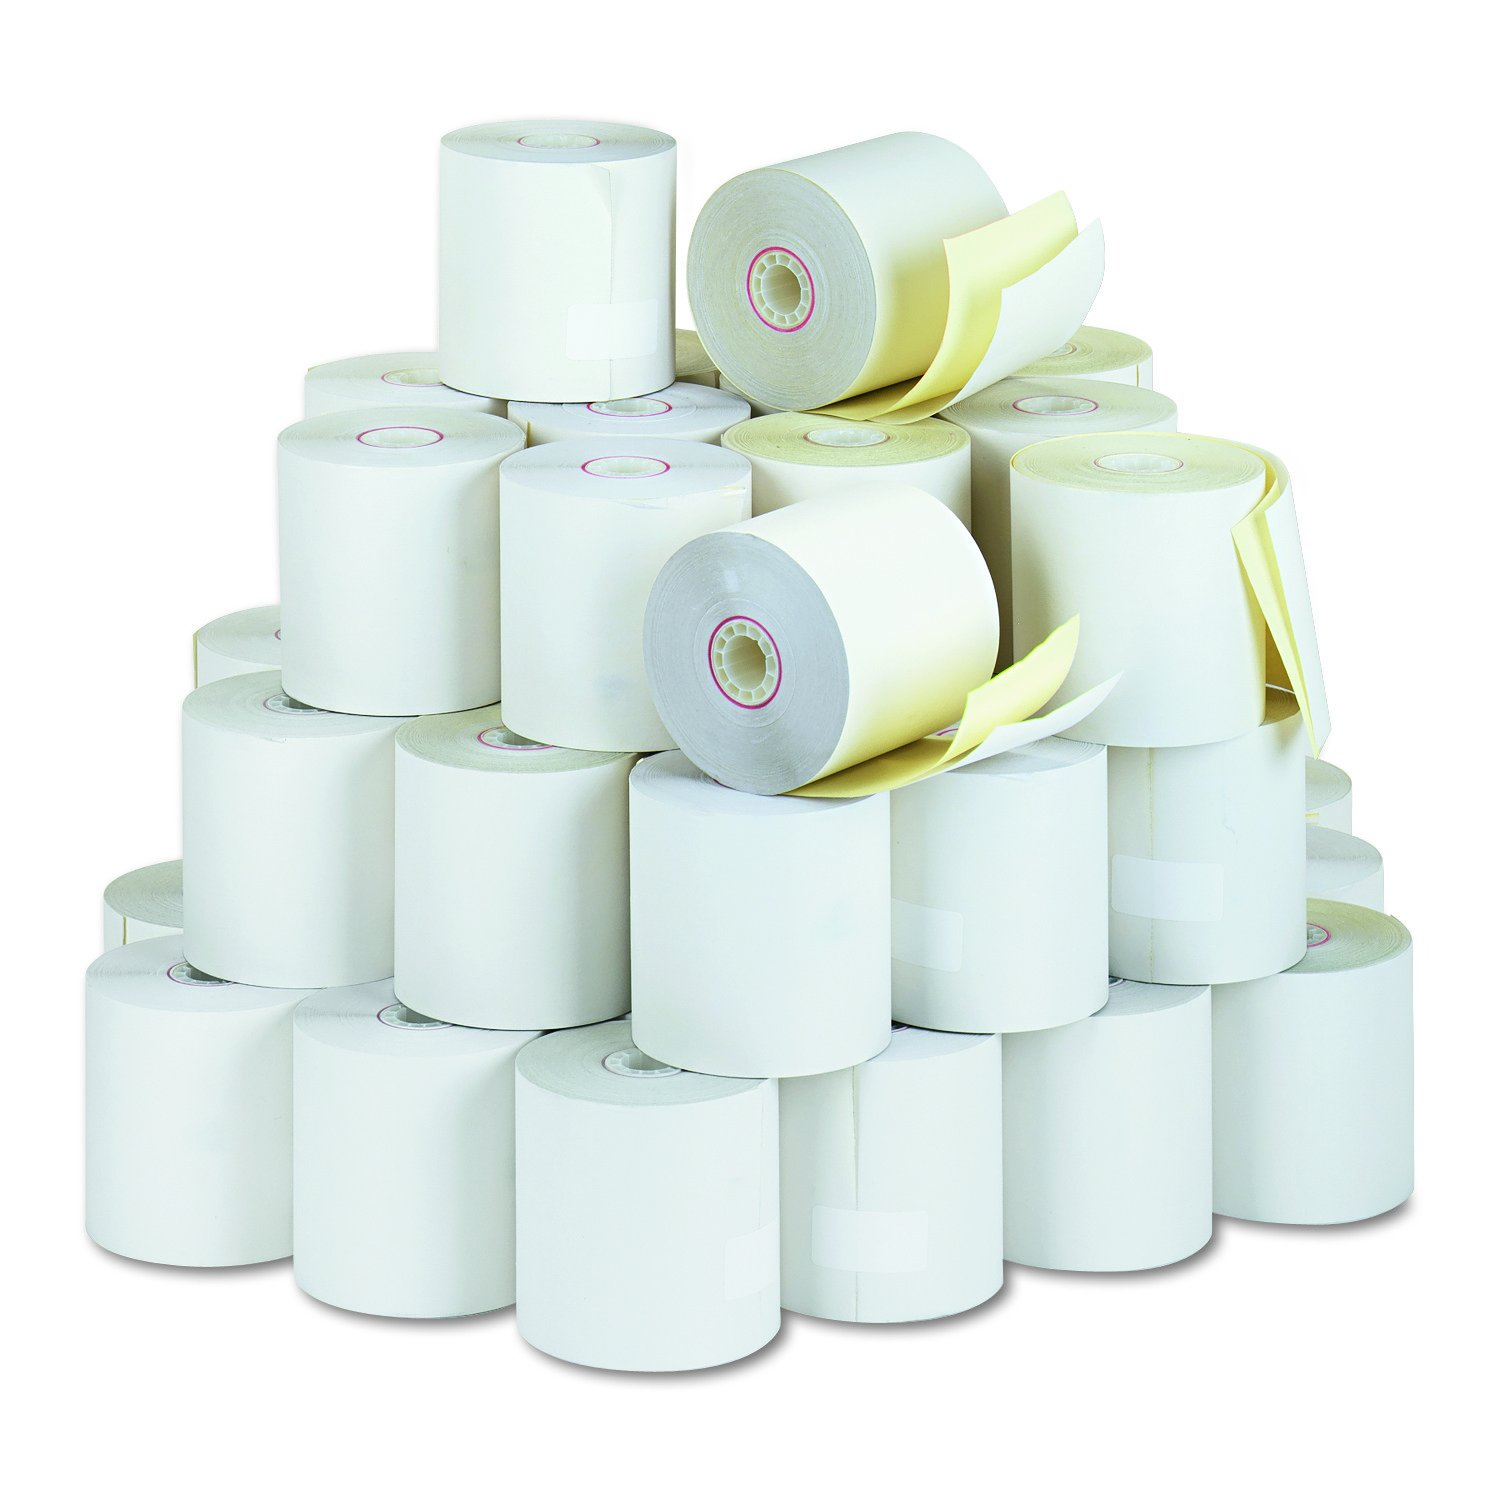 PM Company 07706 Carbonless Duplicate Cash Register Rolls, 3'' X 90', White/Canary, 50 Rolls/ctn by PM Company (Image #2)